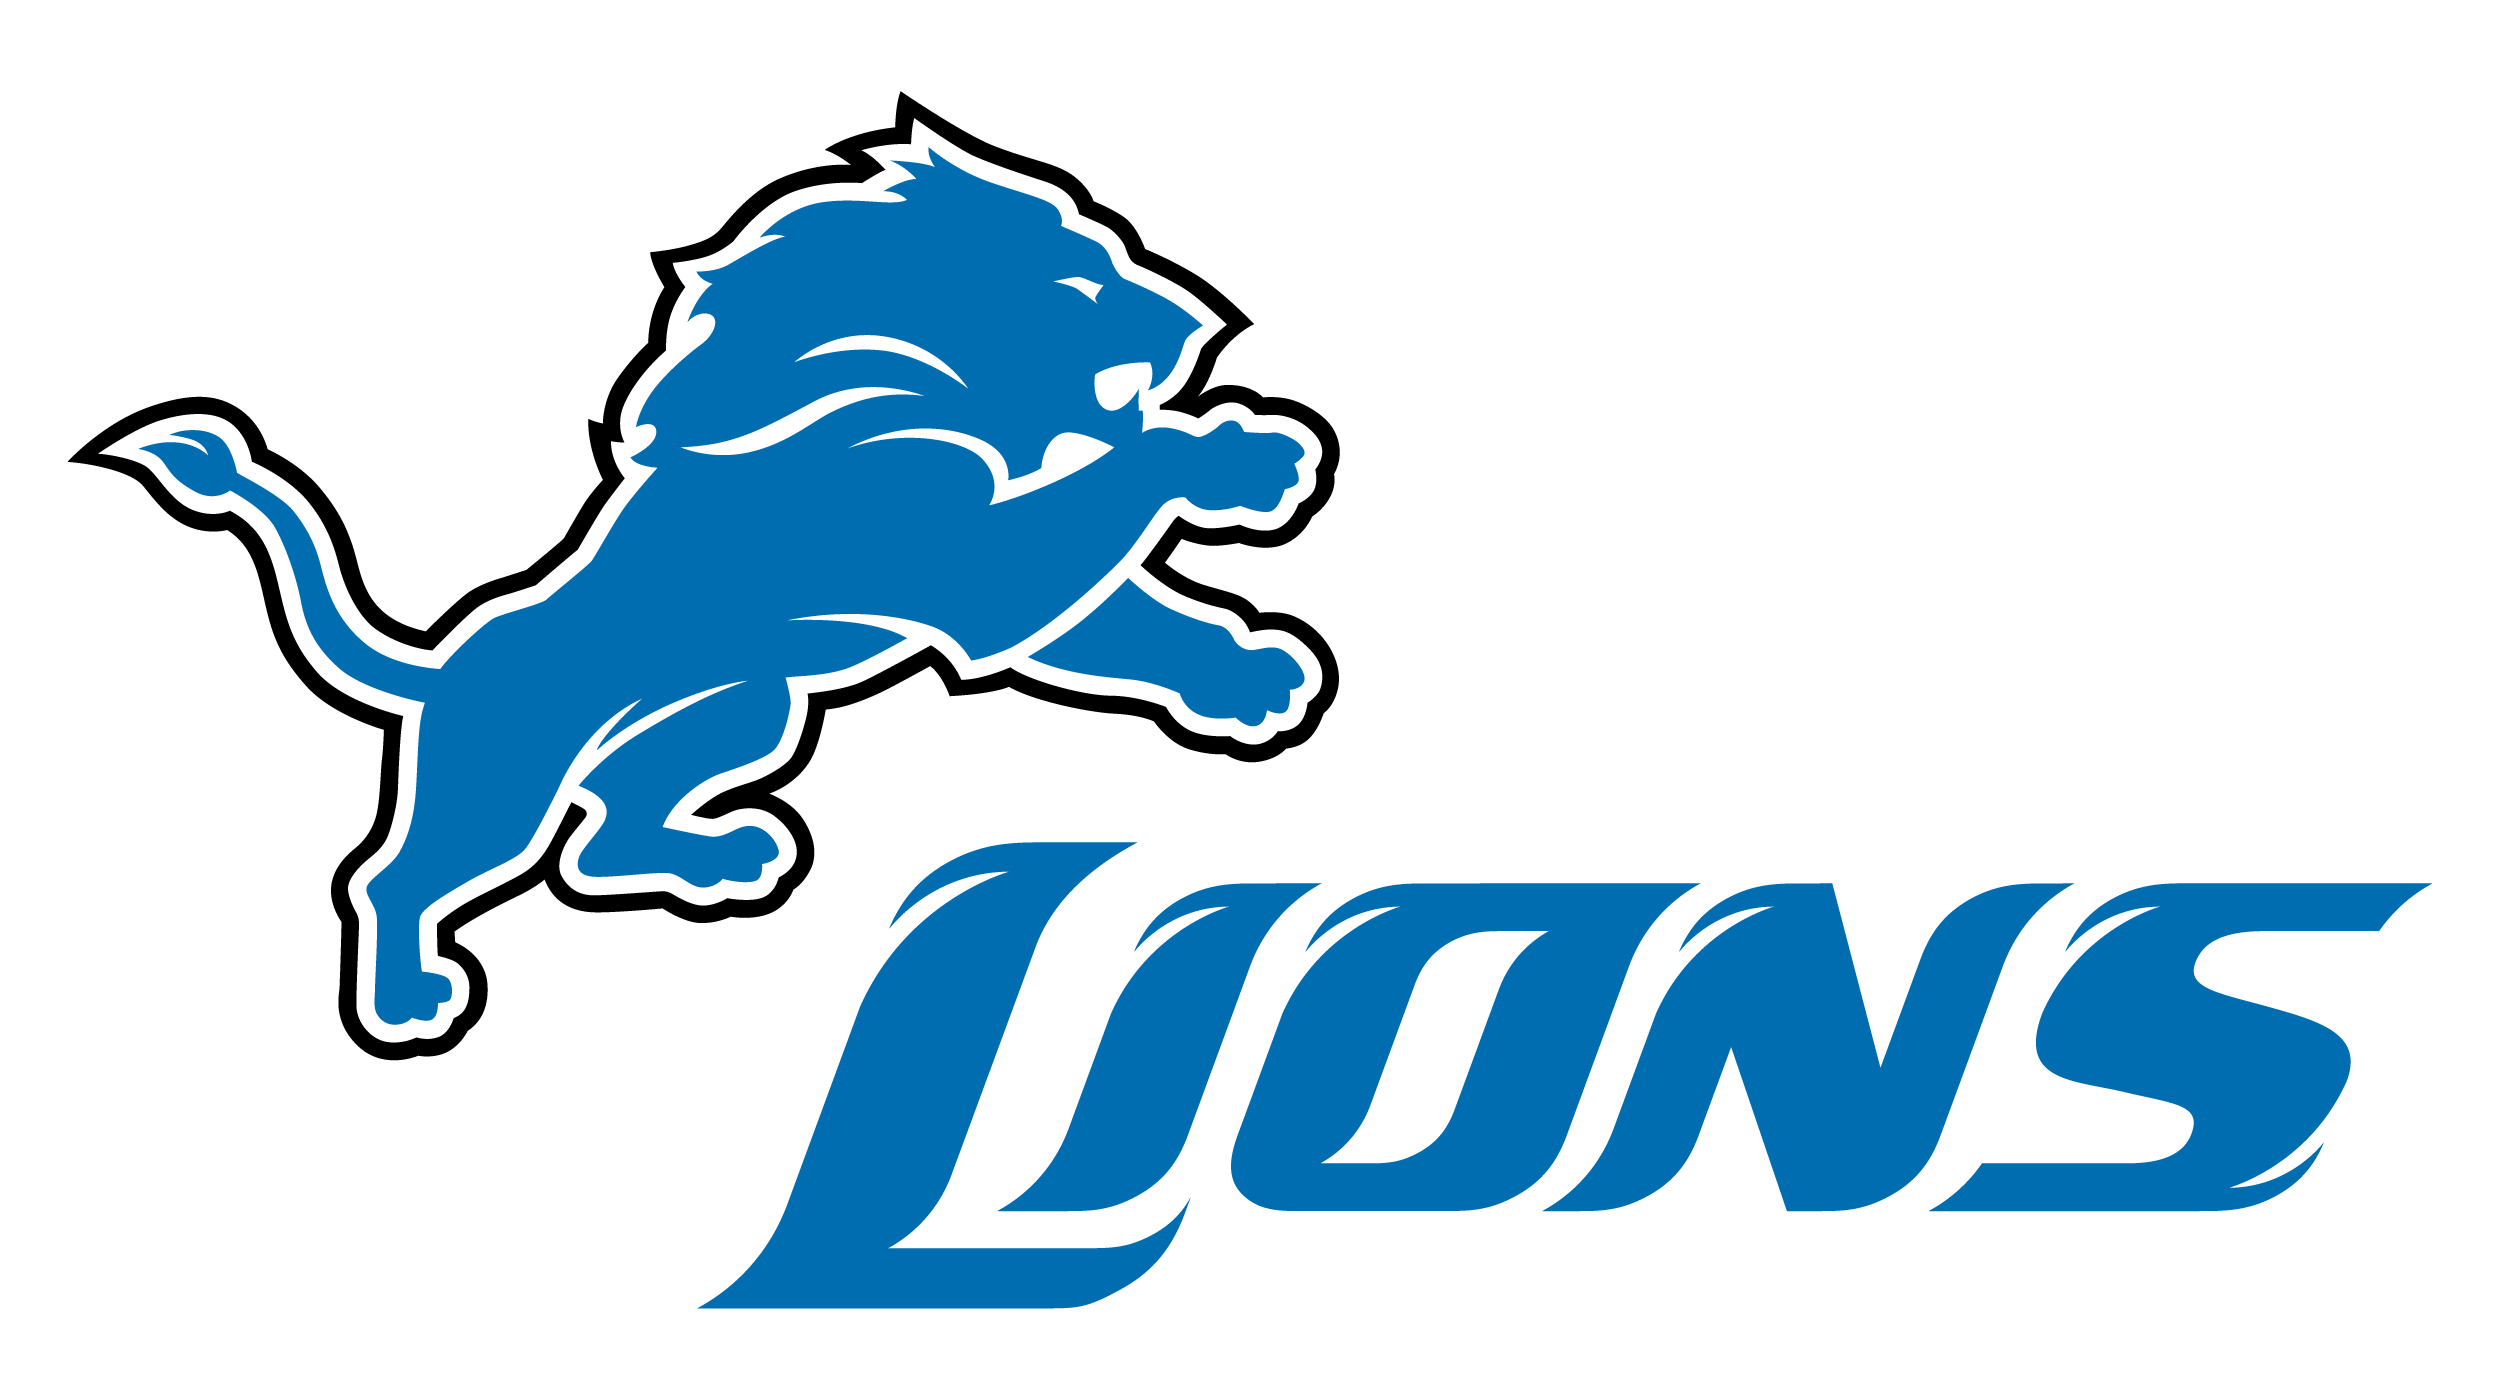 Lions logo png. Detroit symbol meaning history